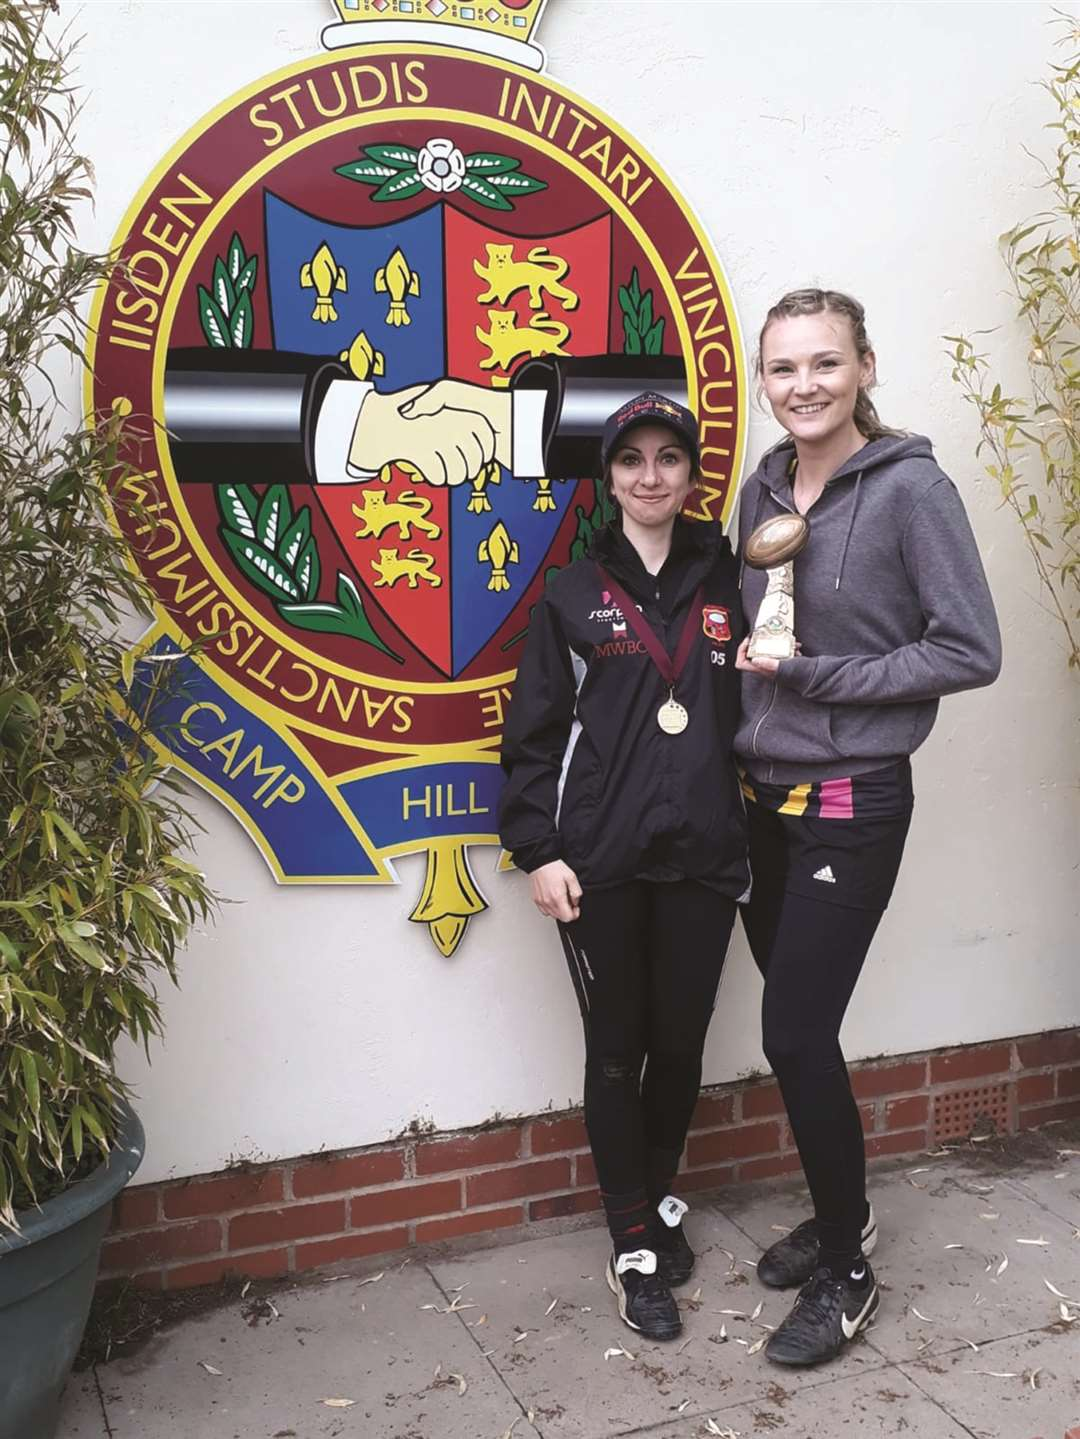 Captain Tasha Rose with the trophy and Wellesbourne's players' player of the tournament, Natalie Monaghan.